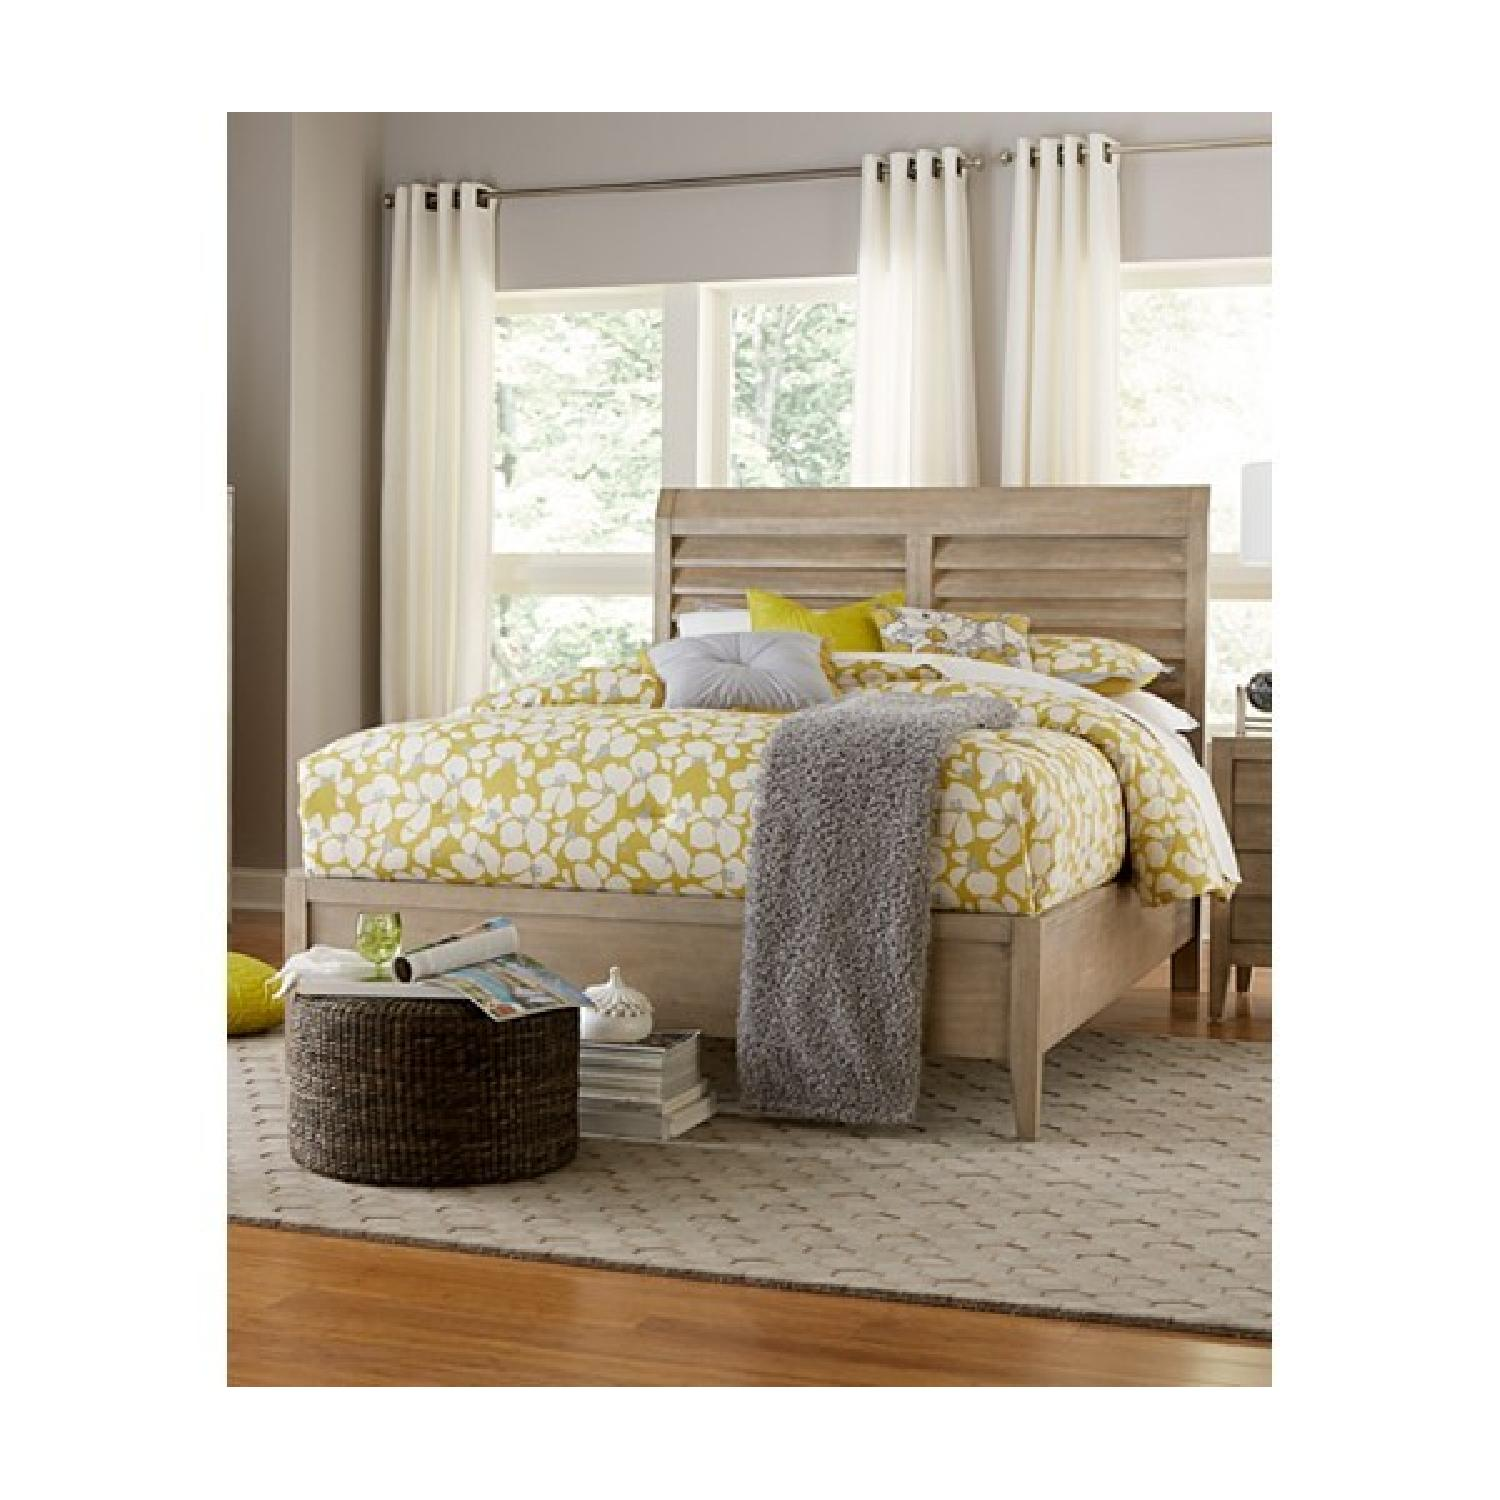 Macy's Acacia HardWood Natural Style Queen Bed Frame - image-3